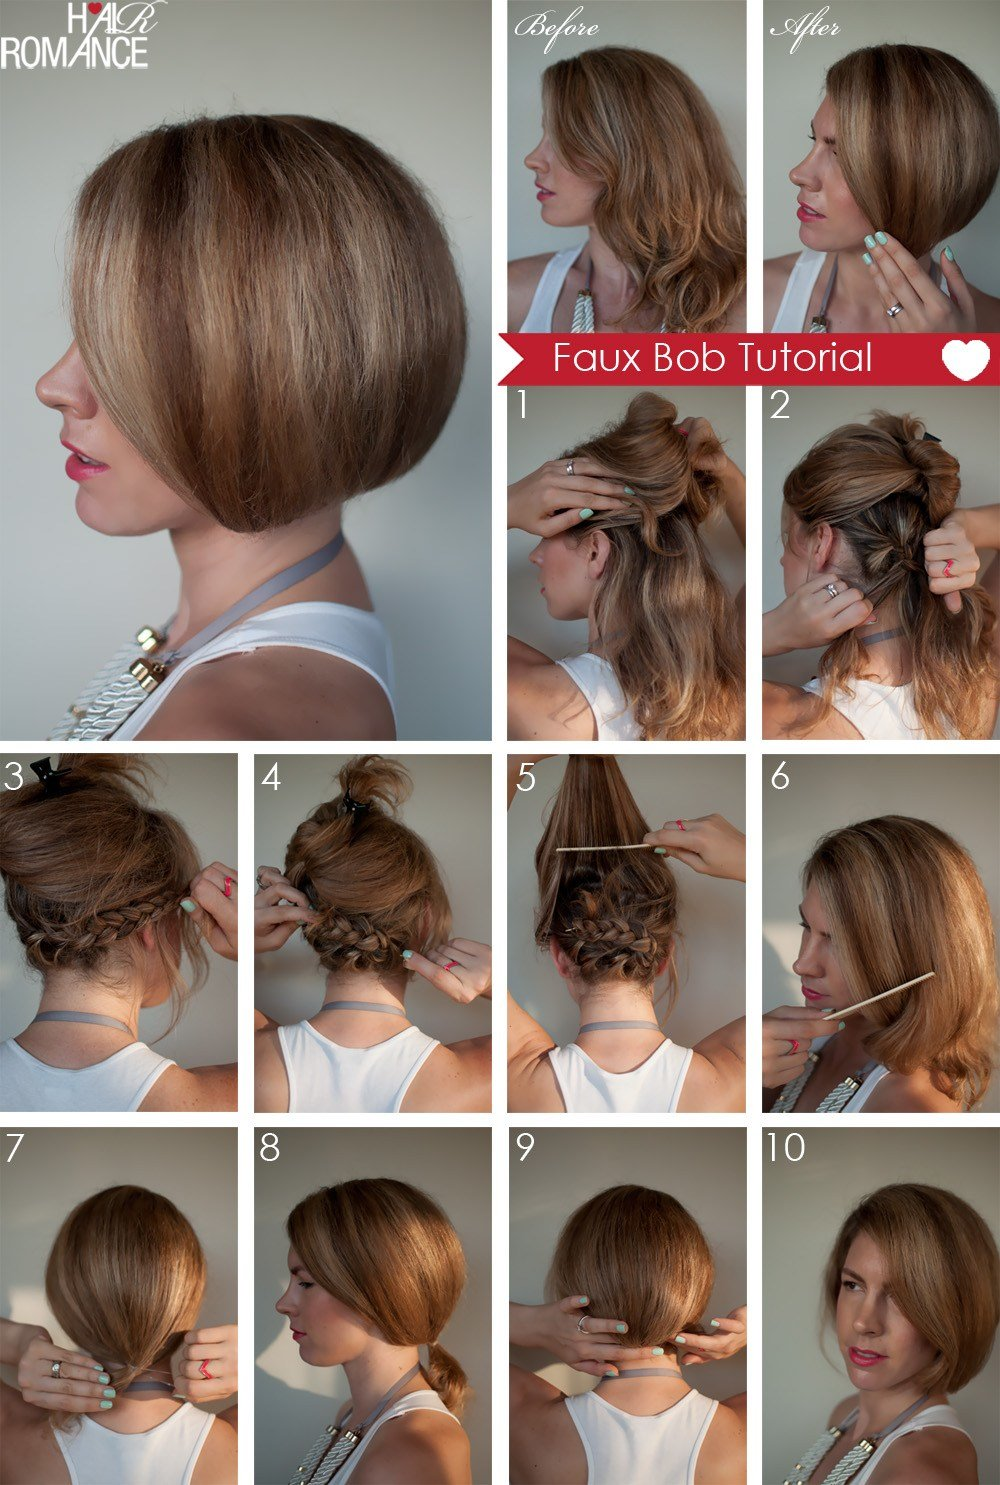 The Best Hair Tutorial How To Create A Faux Bob Hair Romance Pictures